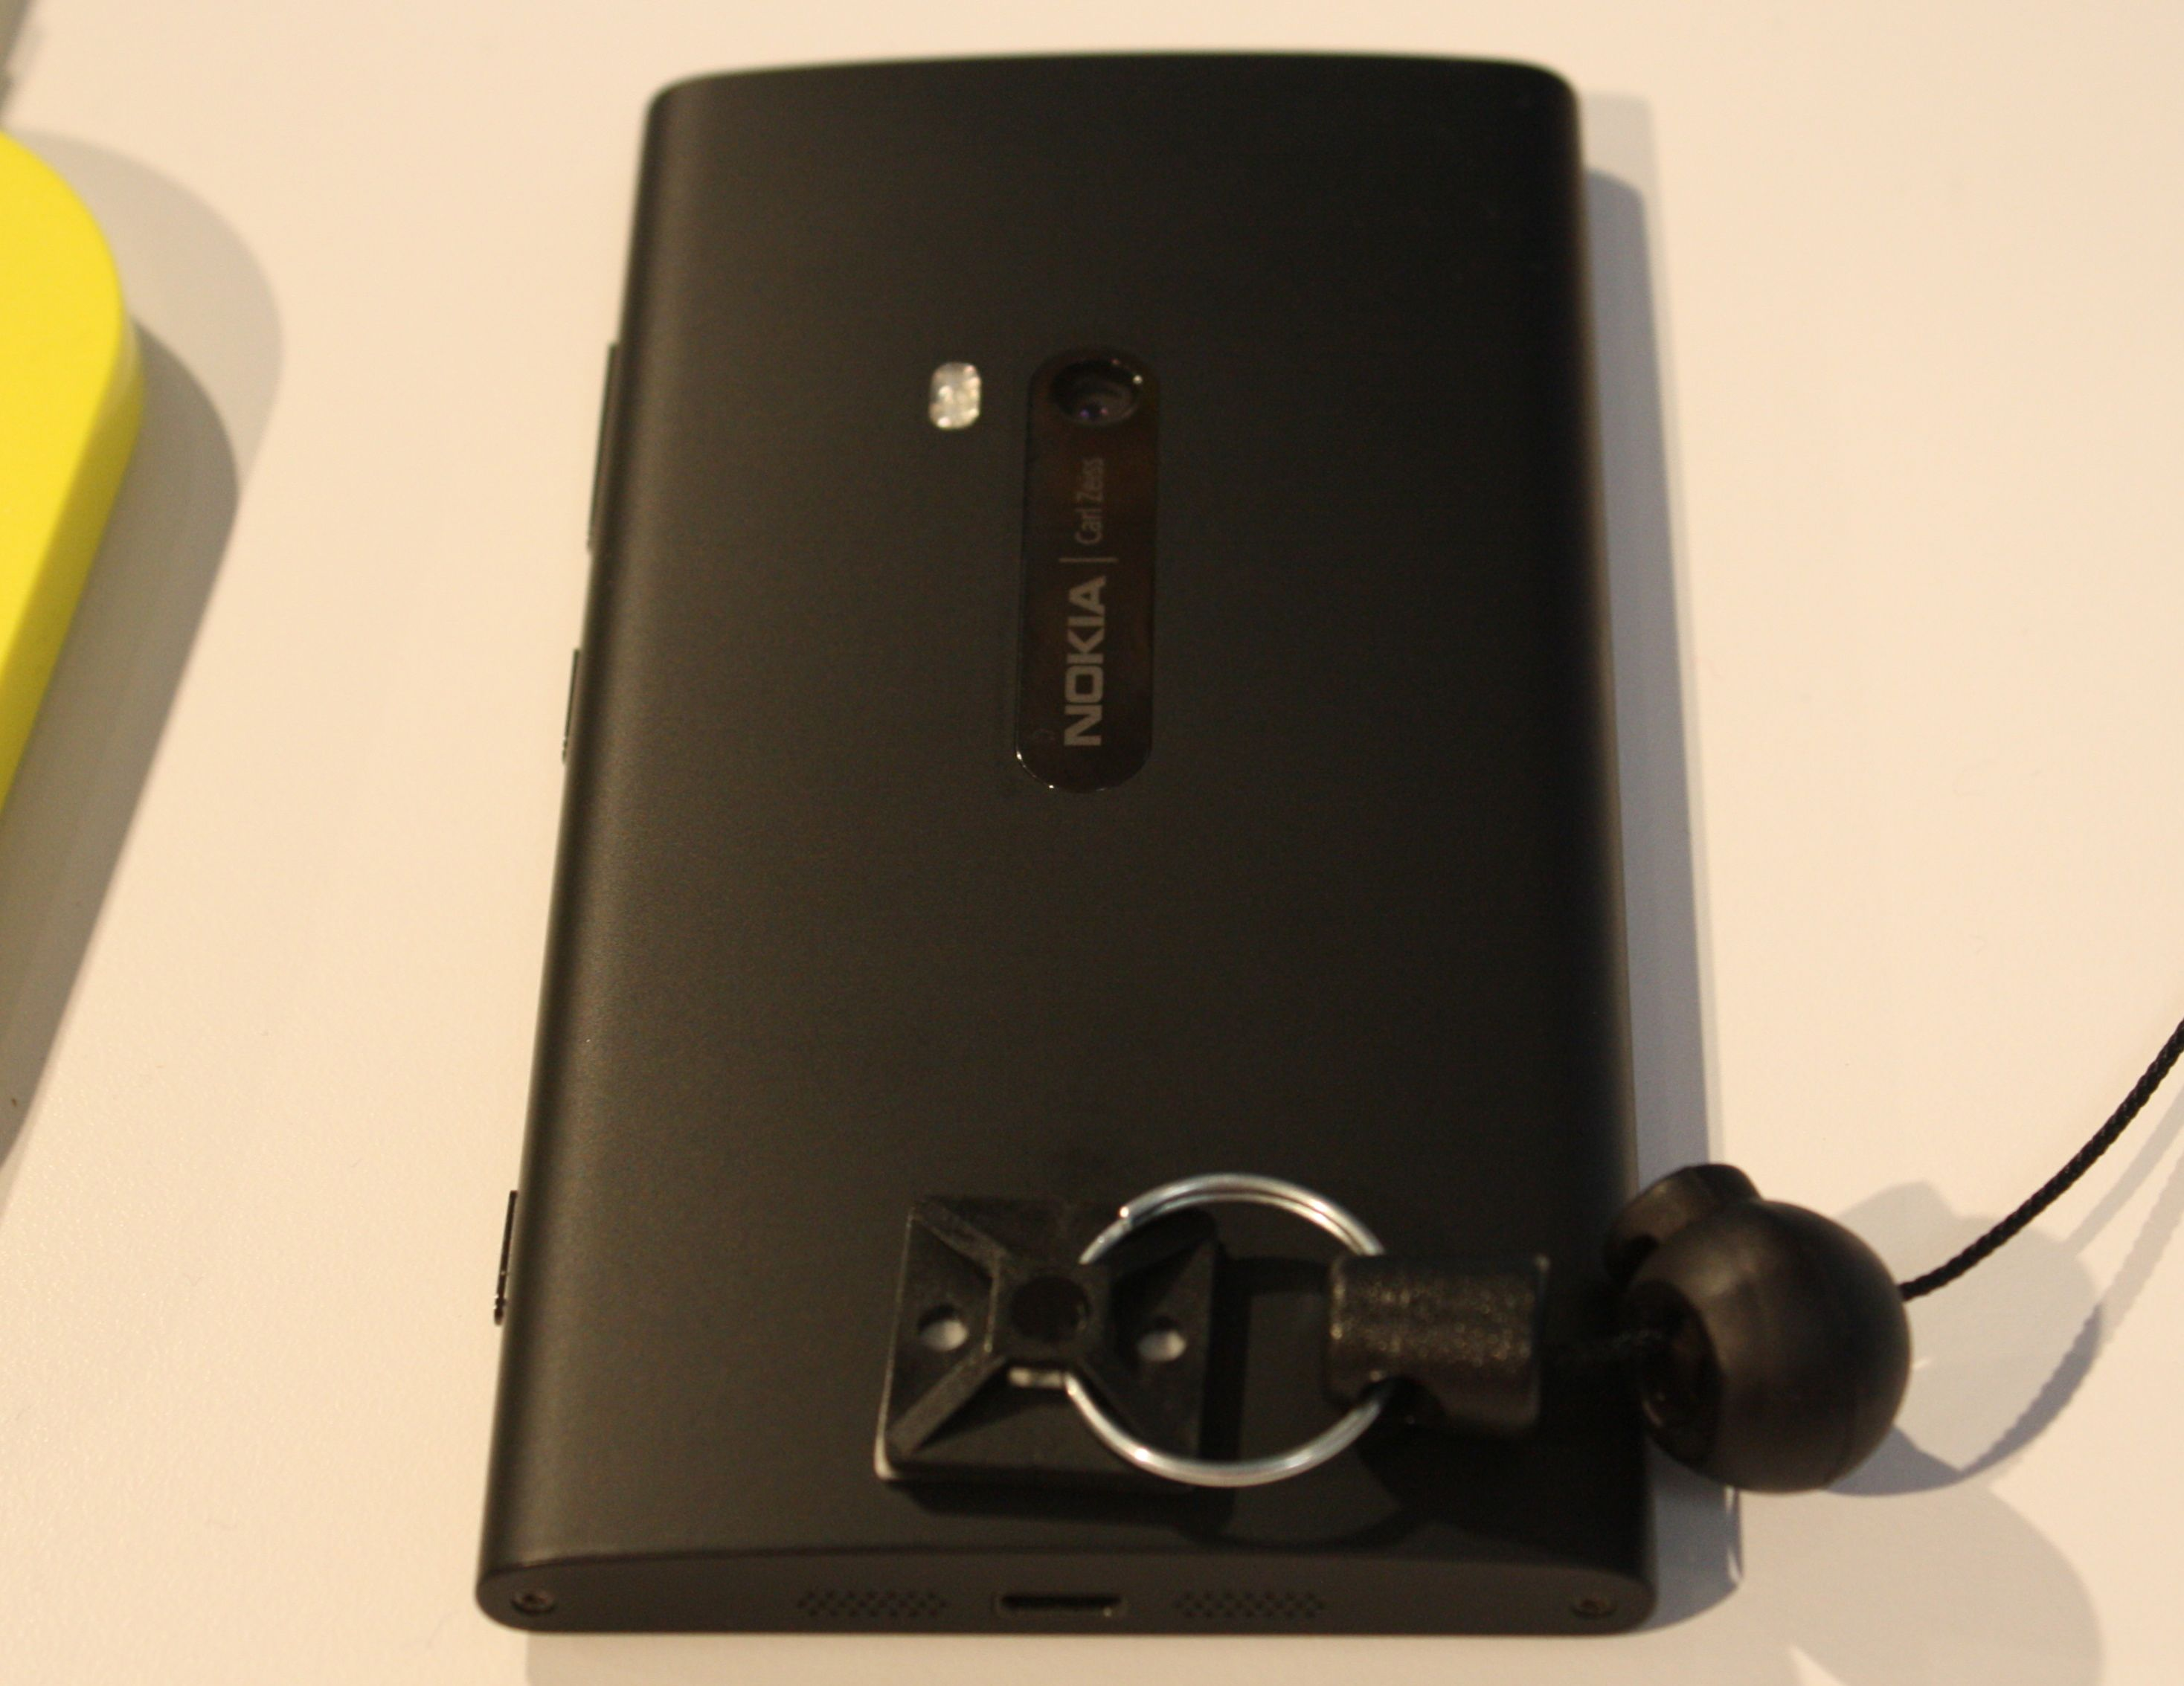 The black matte finish Lumia 920